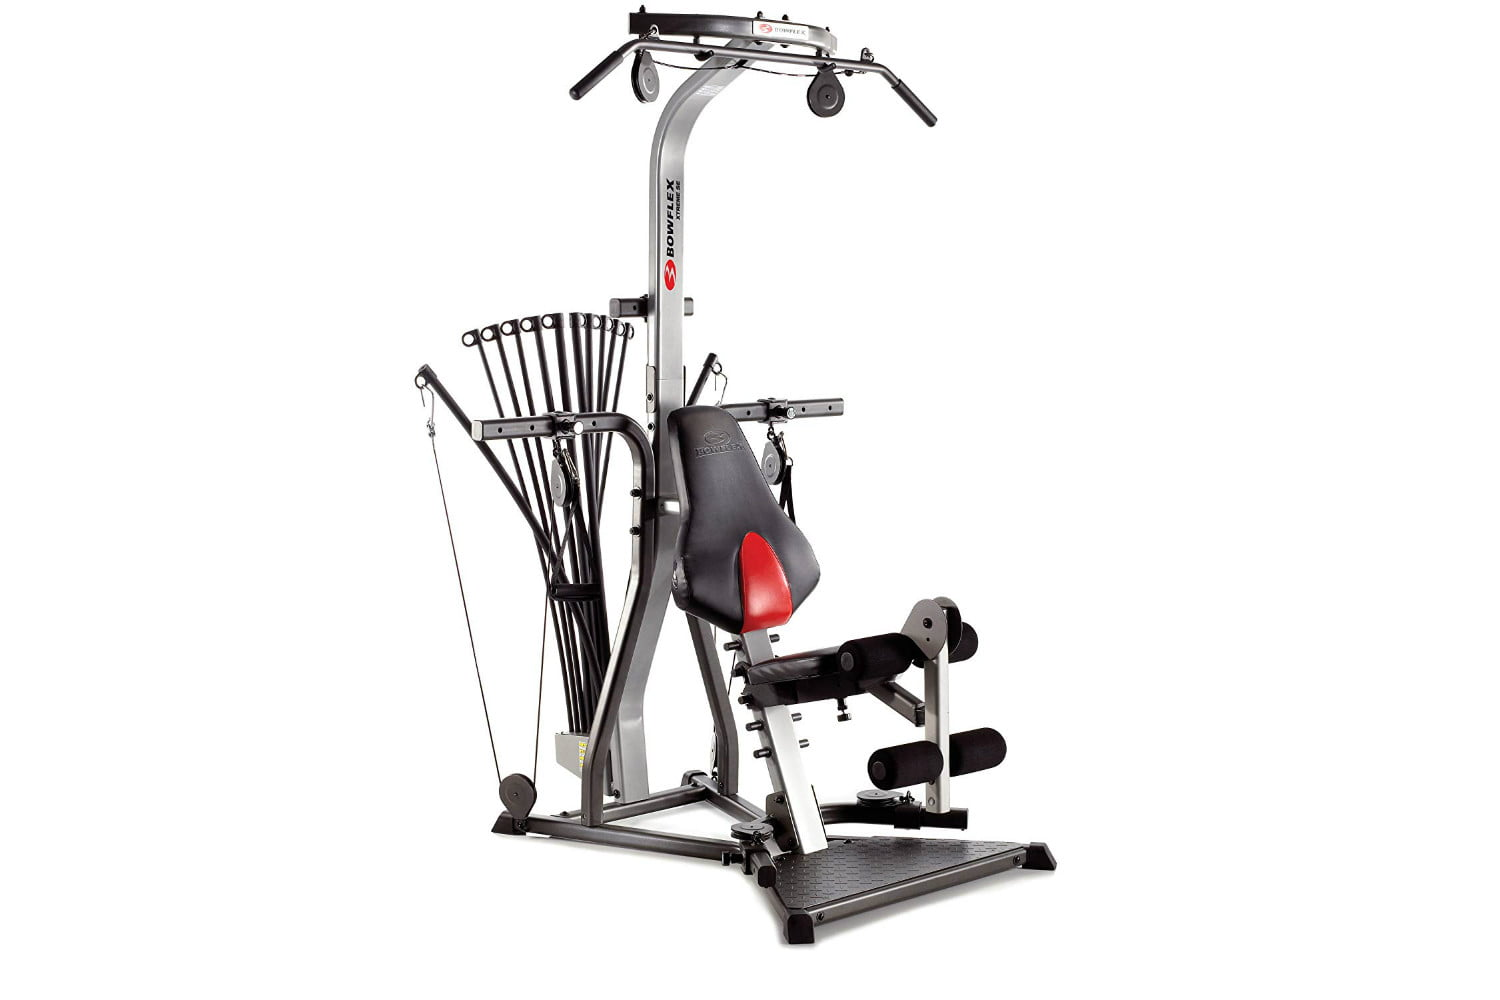 Bowflex home fitness equipment